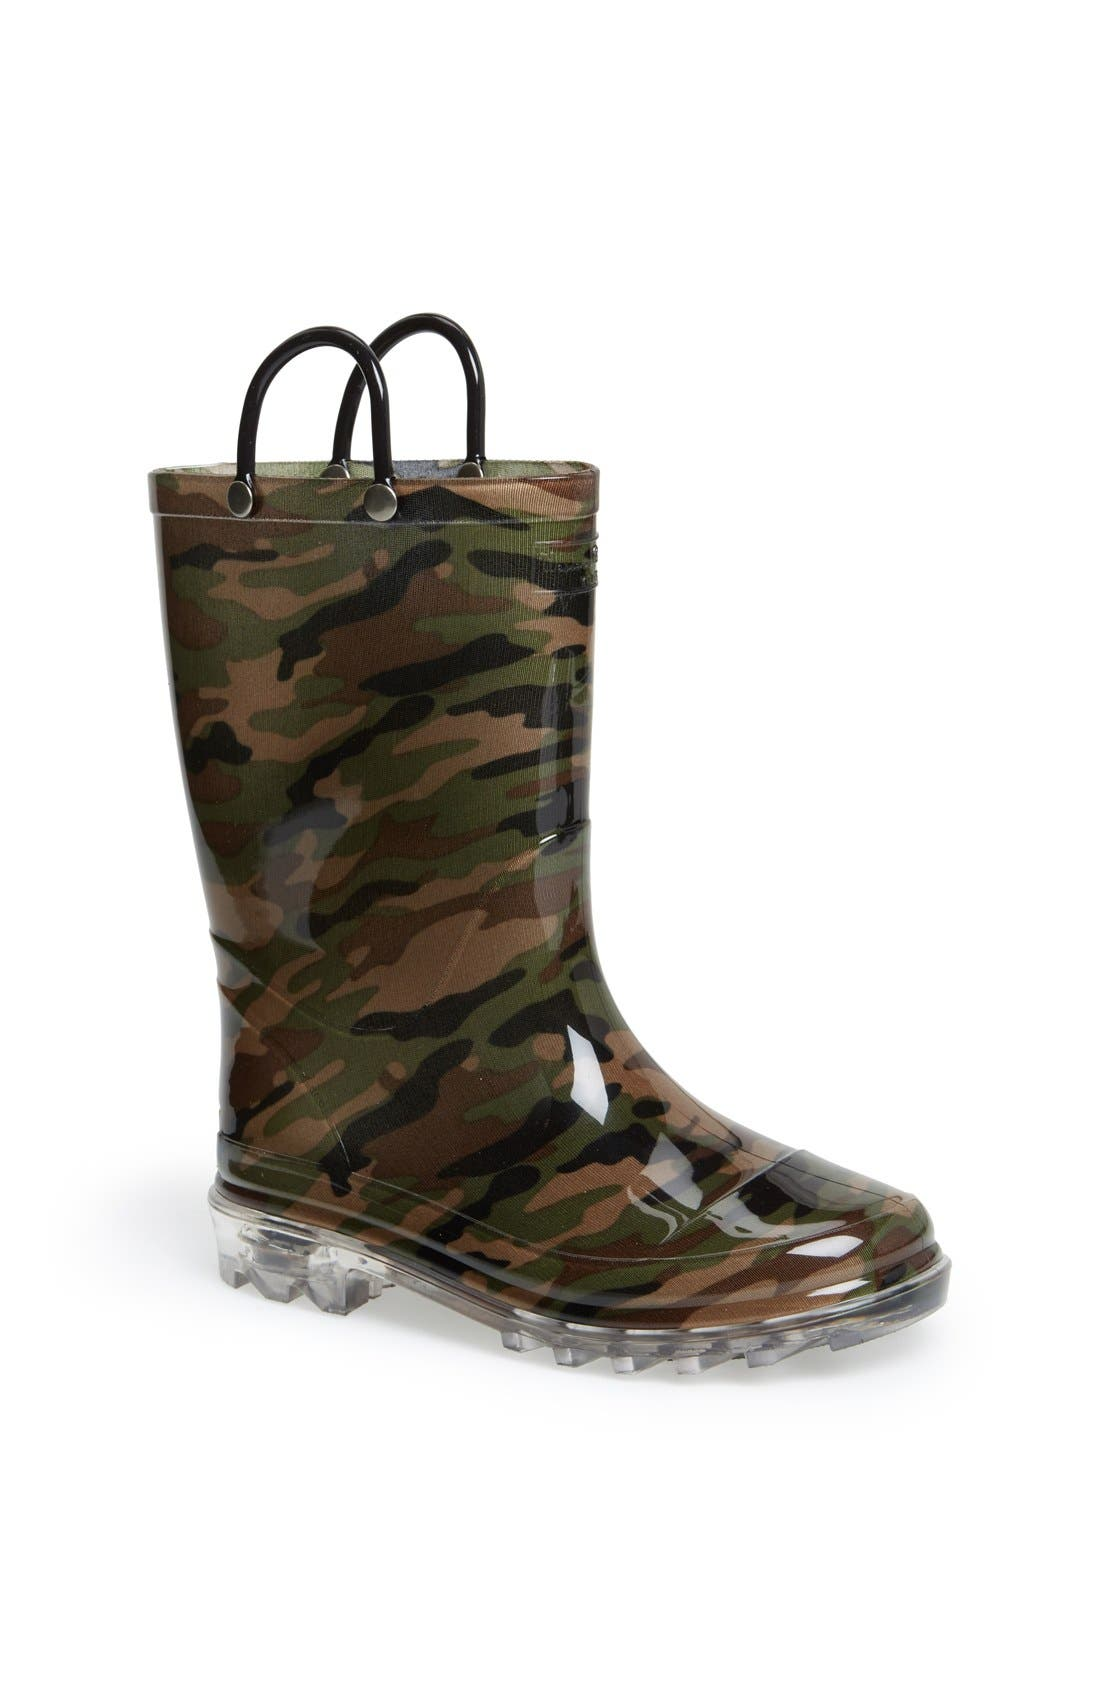 'Camo' Light-Up Rain Boot,                         Main,                         color, Green